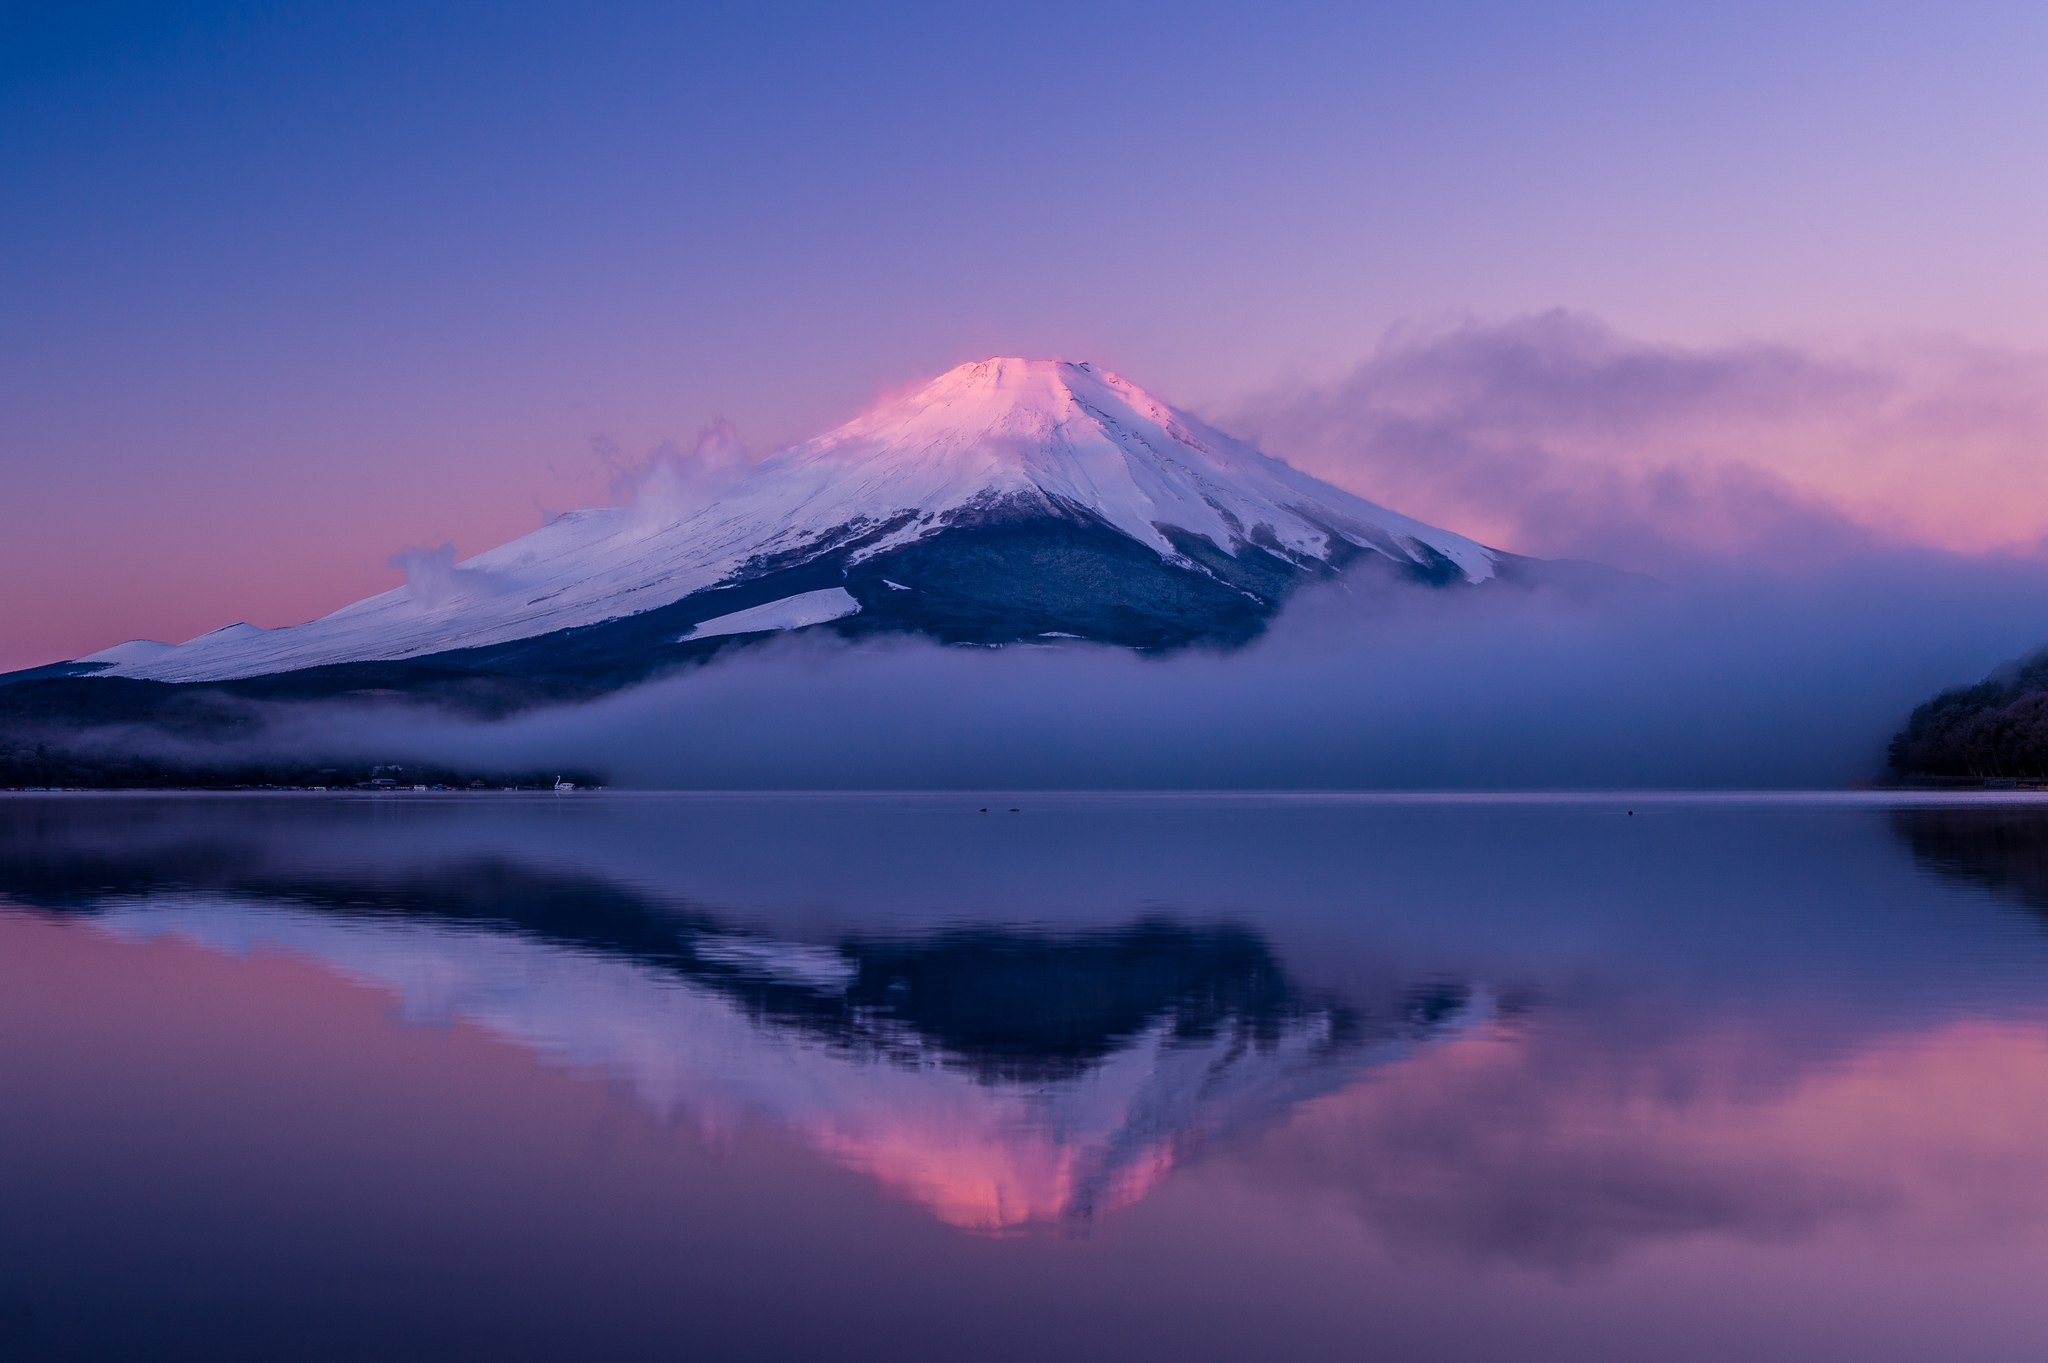 Mount Fuji HD Wallpaper Background Image 2048x1363 ID592781 2048x1363